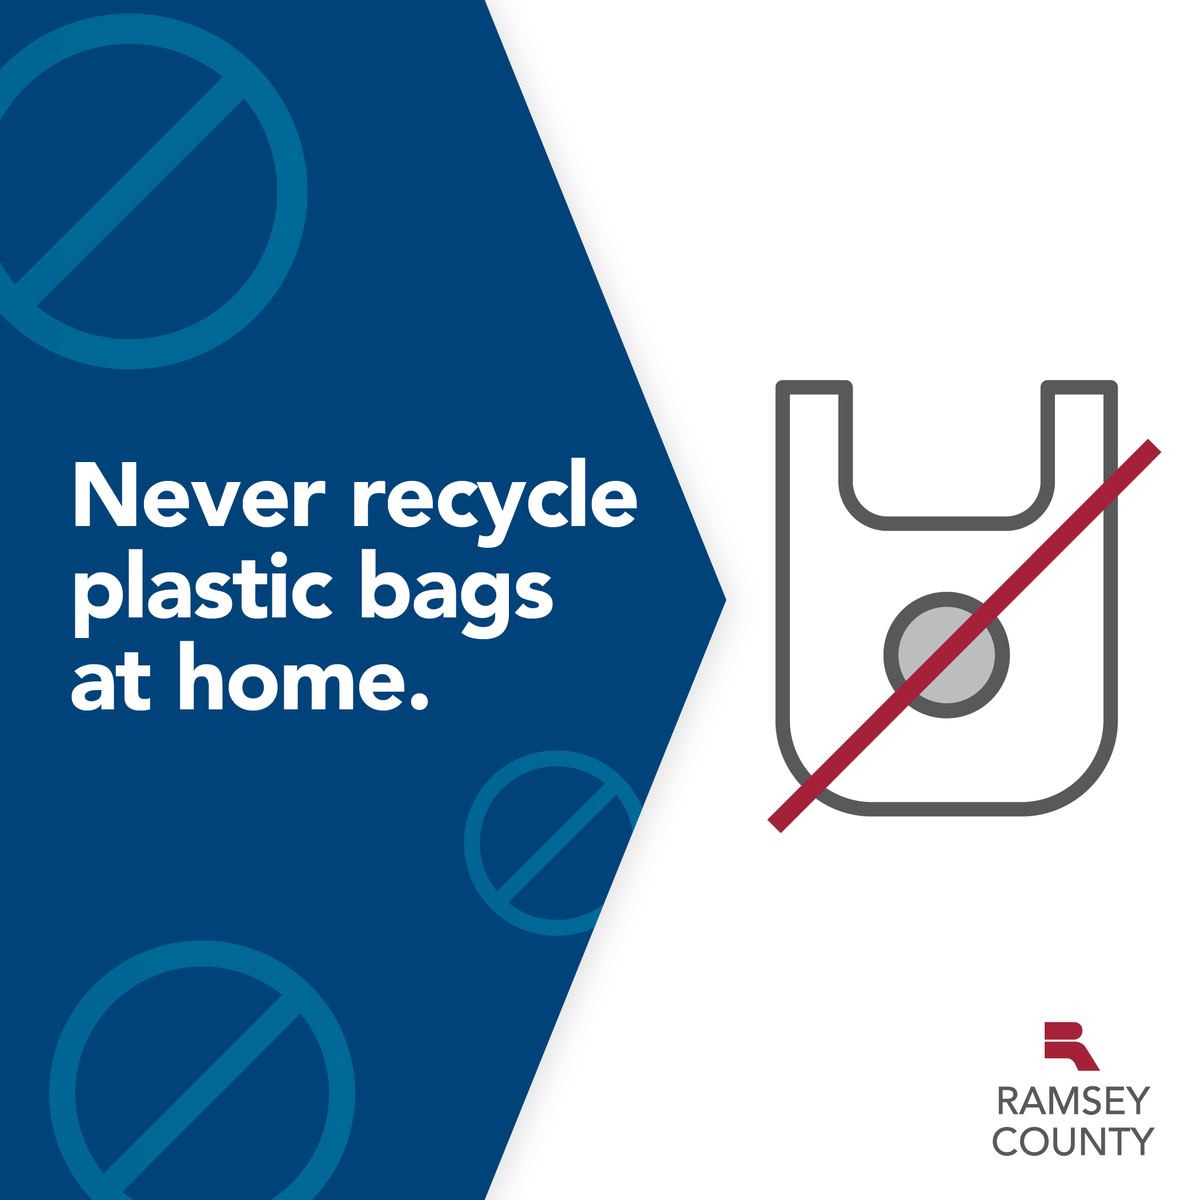 Please do not place plastic bags or plastic film in your recycling cart. They cannot be recycled in curbside and must be returned to participating drop-off locations such as retail stores for recycling: